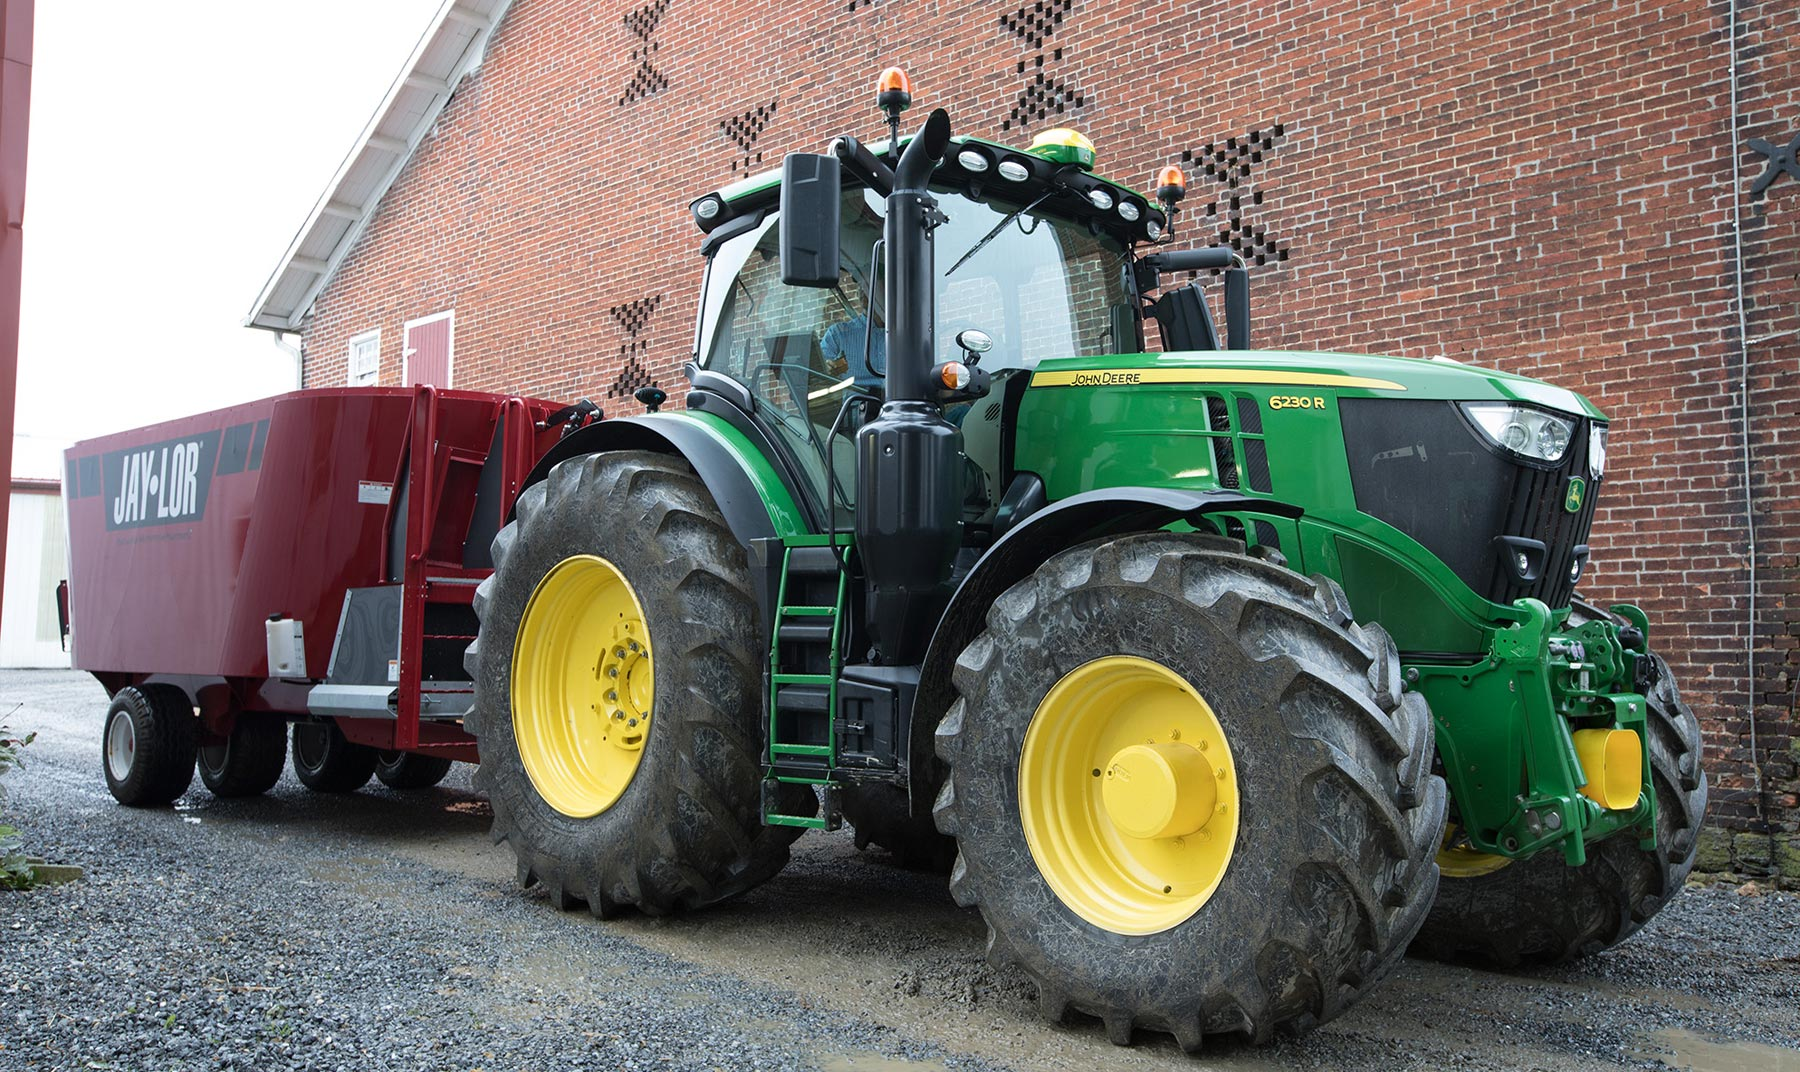 A 6230R tractor parked by a building